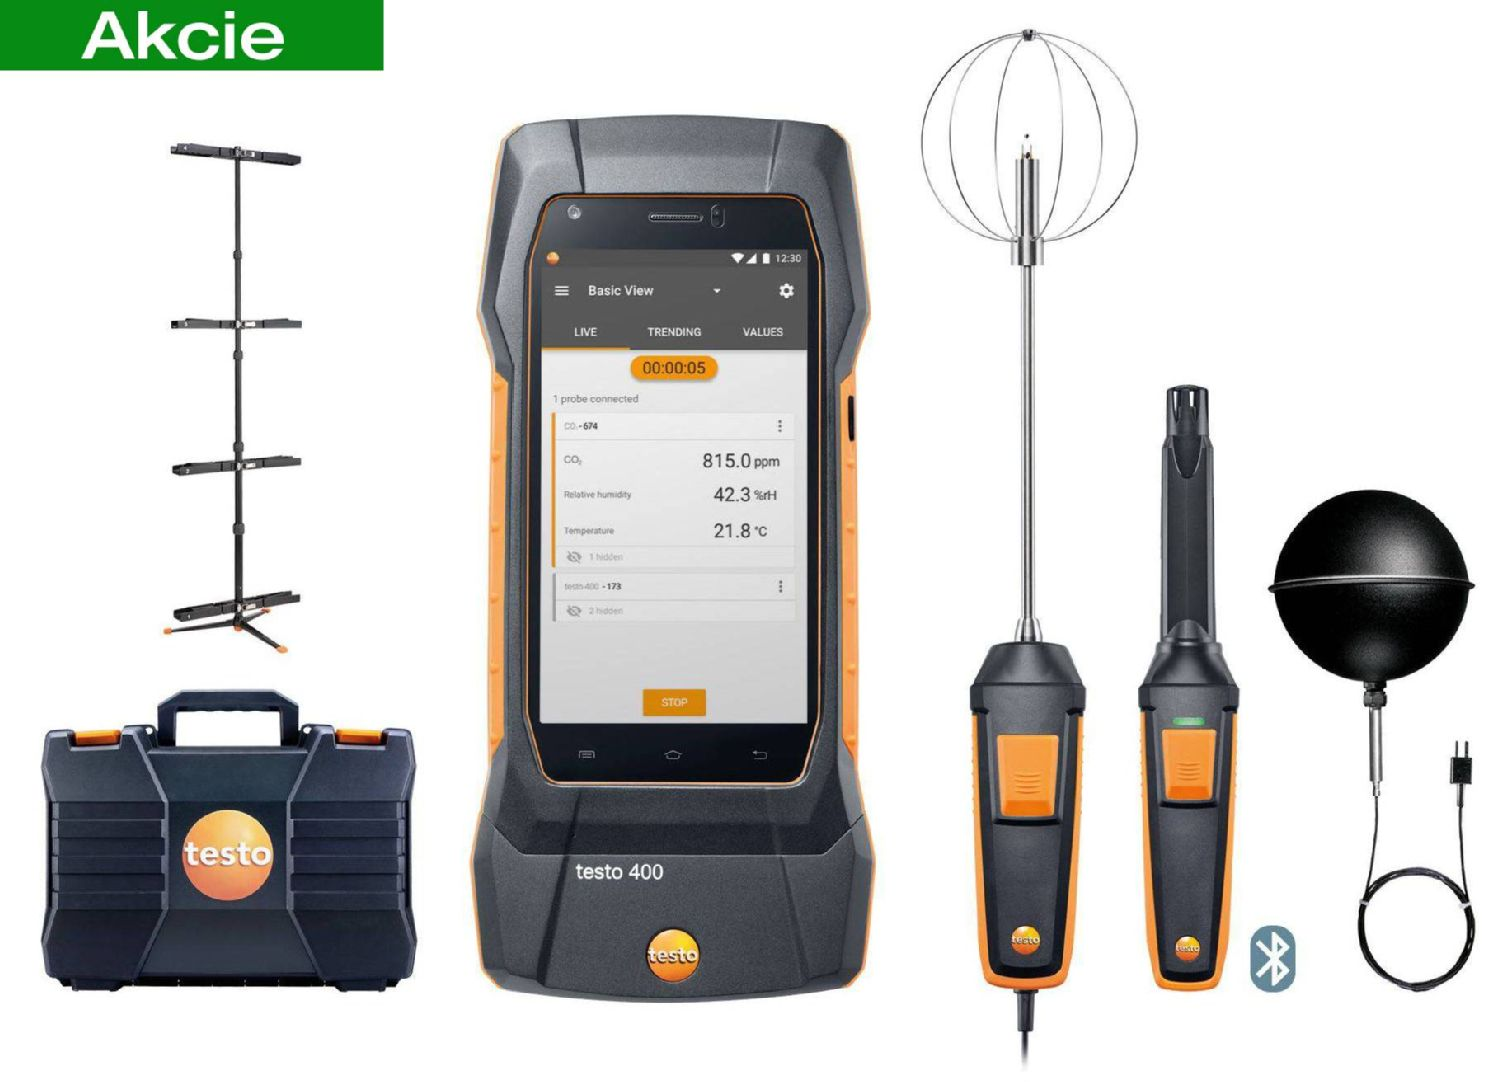 testo 400 IAQ and comfort kit with tripod